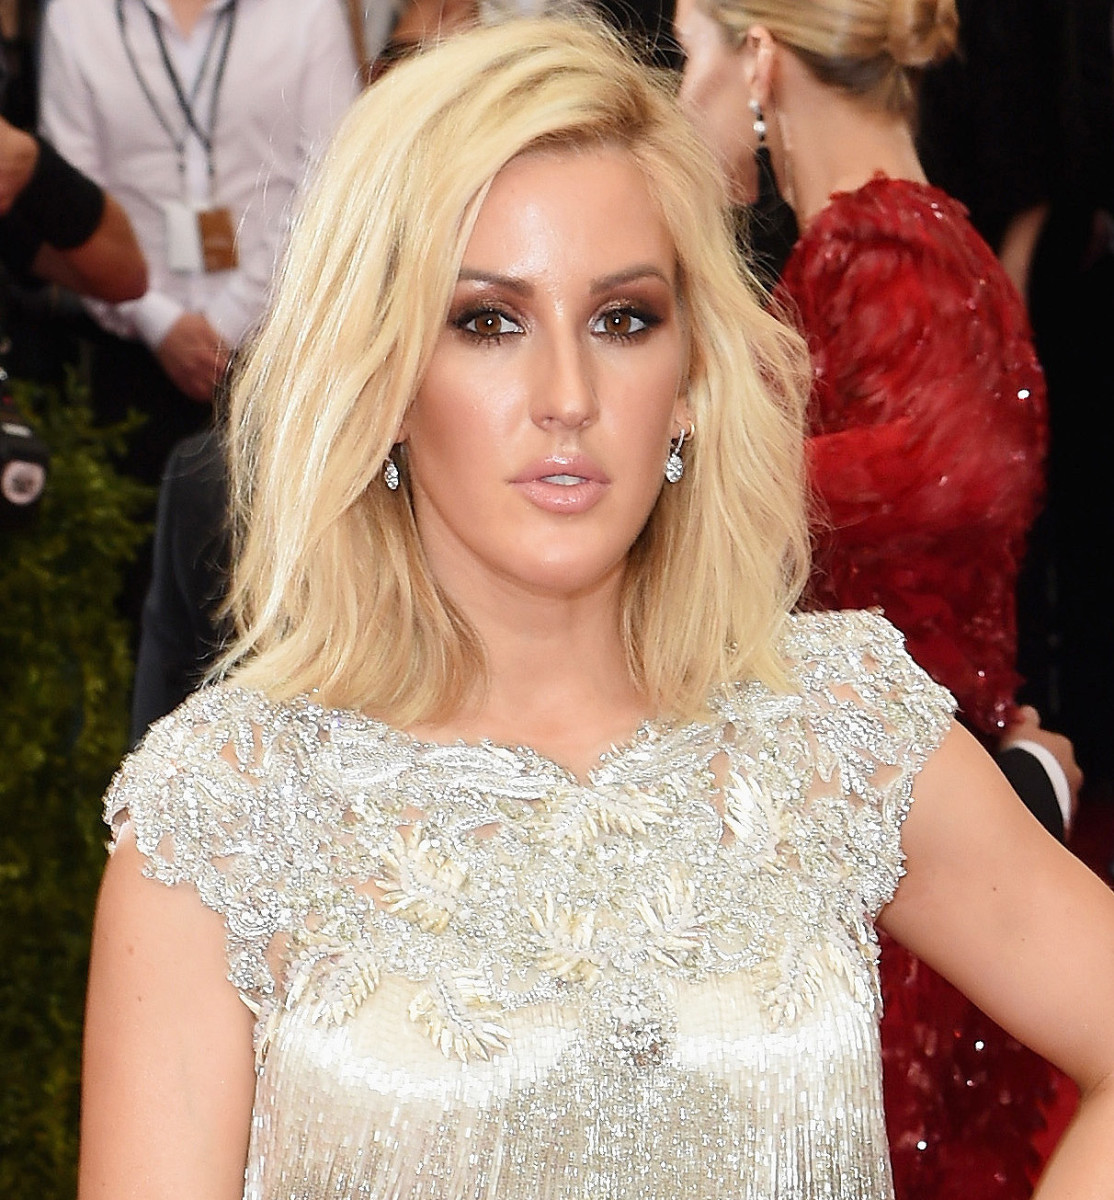 mac ellie goulding_ellie at the met gala 2015